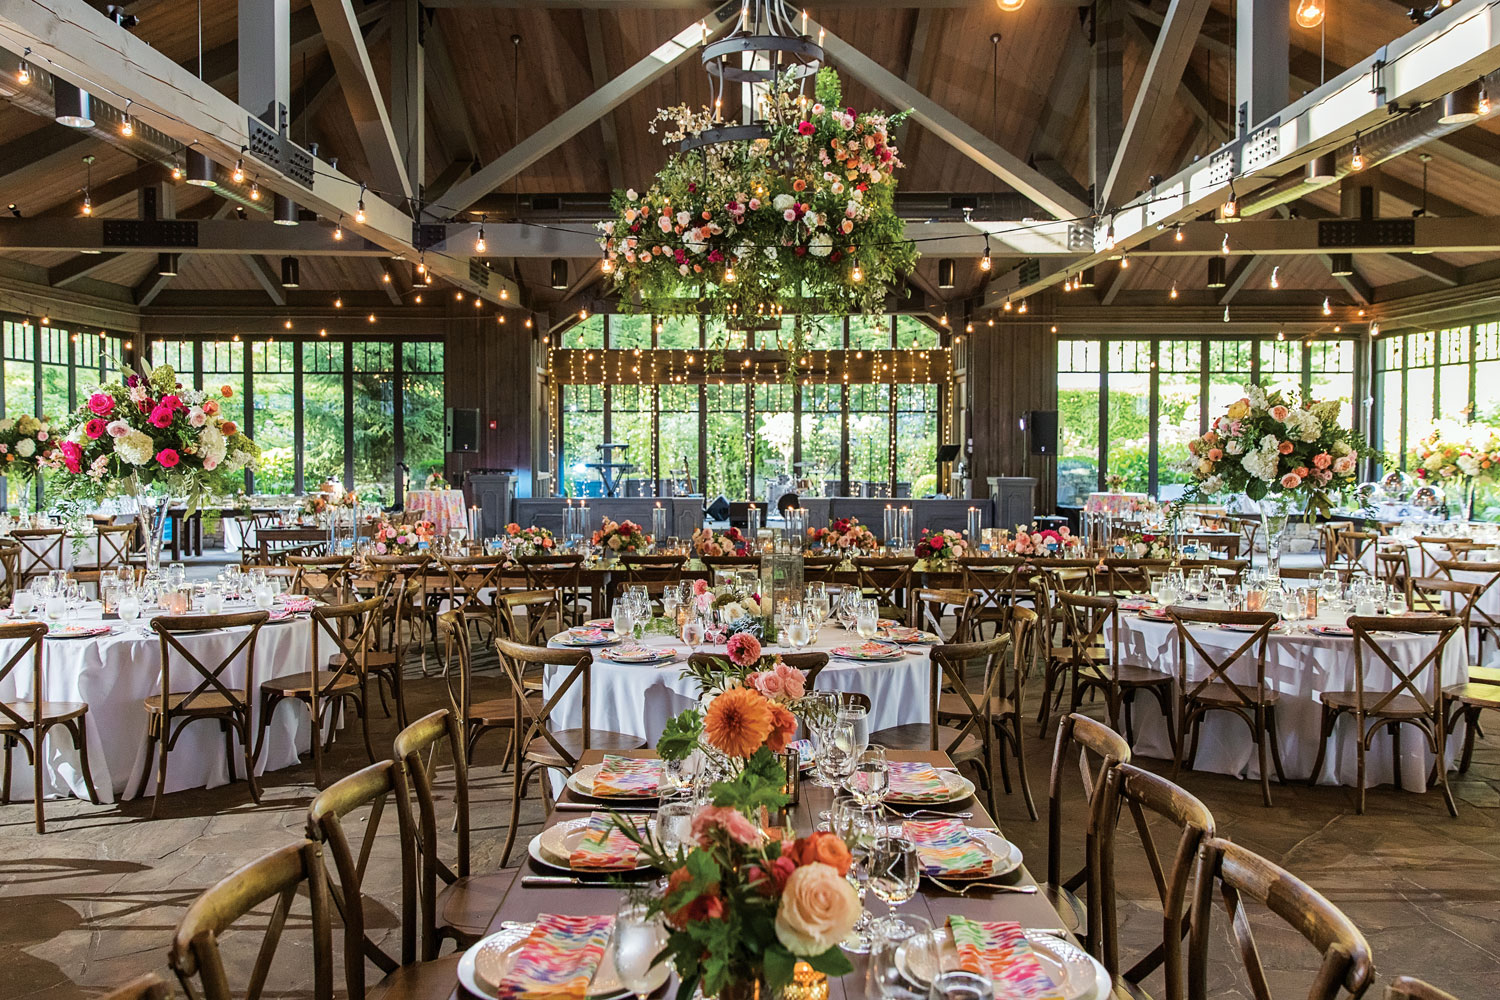 Inside Weddings magazine summer 2019 issue preview colorful flowers rustic chic barn wedding reception